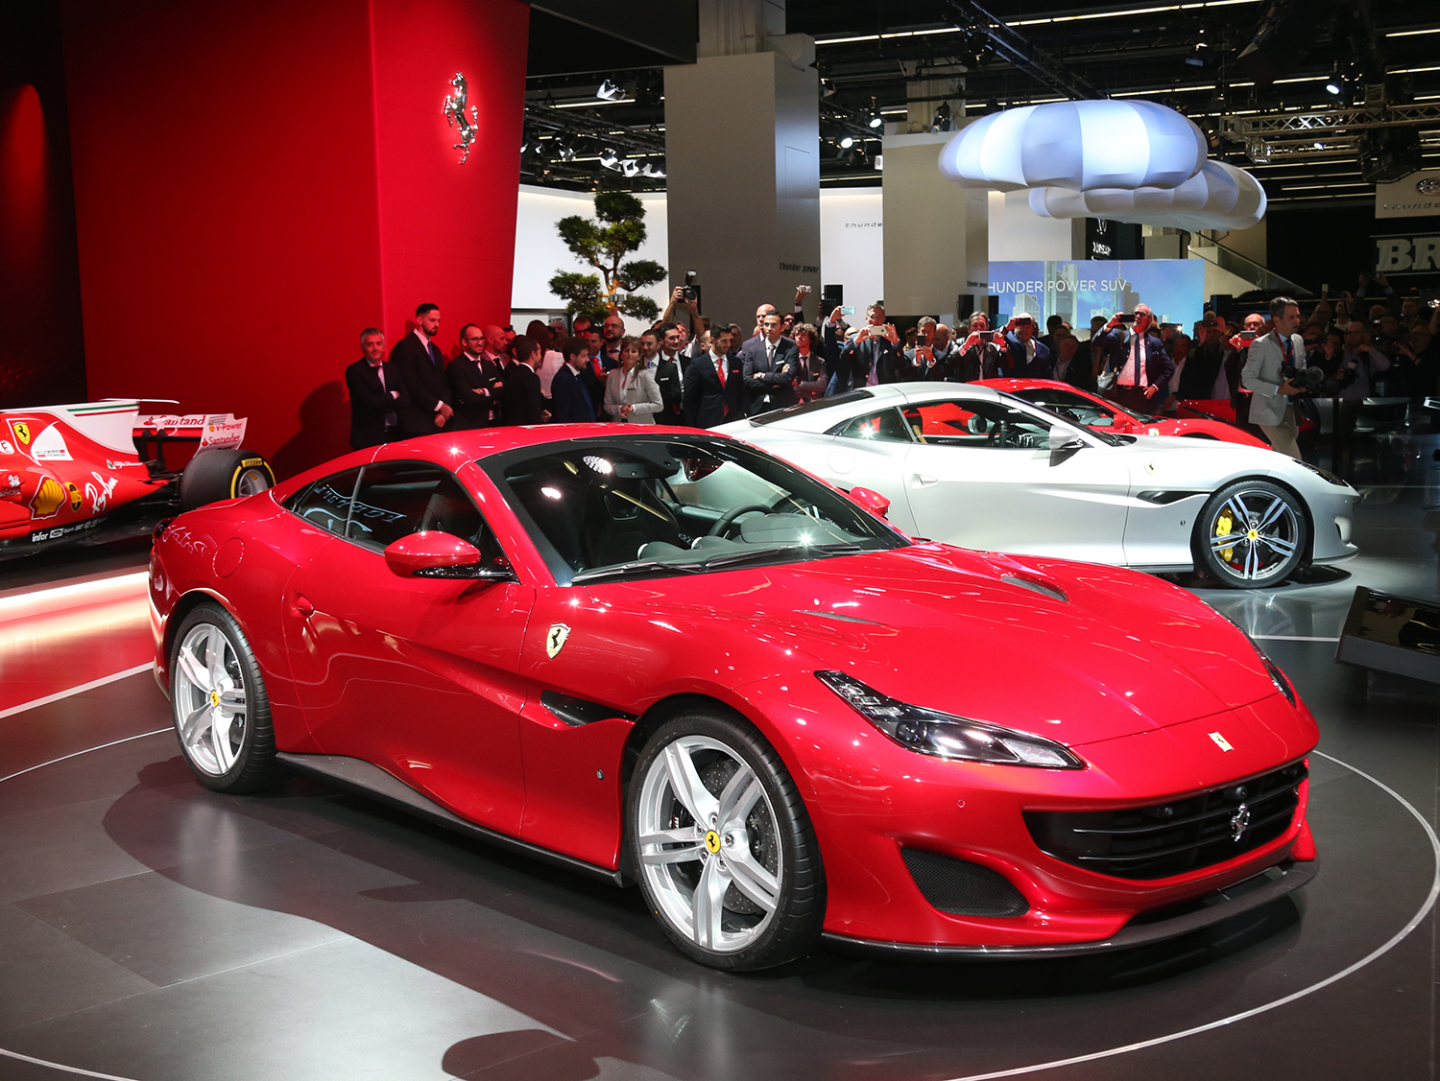 The New Ferrari Portofino The Italian Gt Par Excellence On The